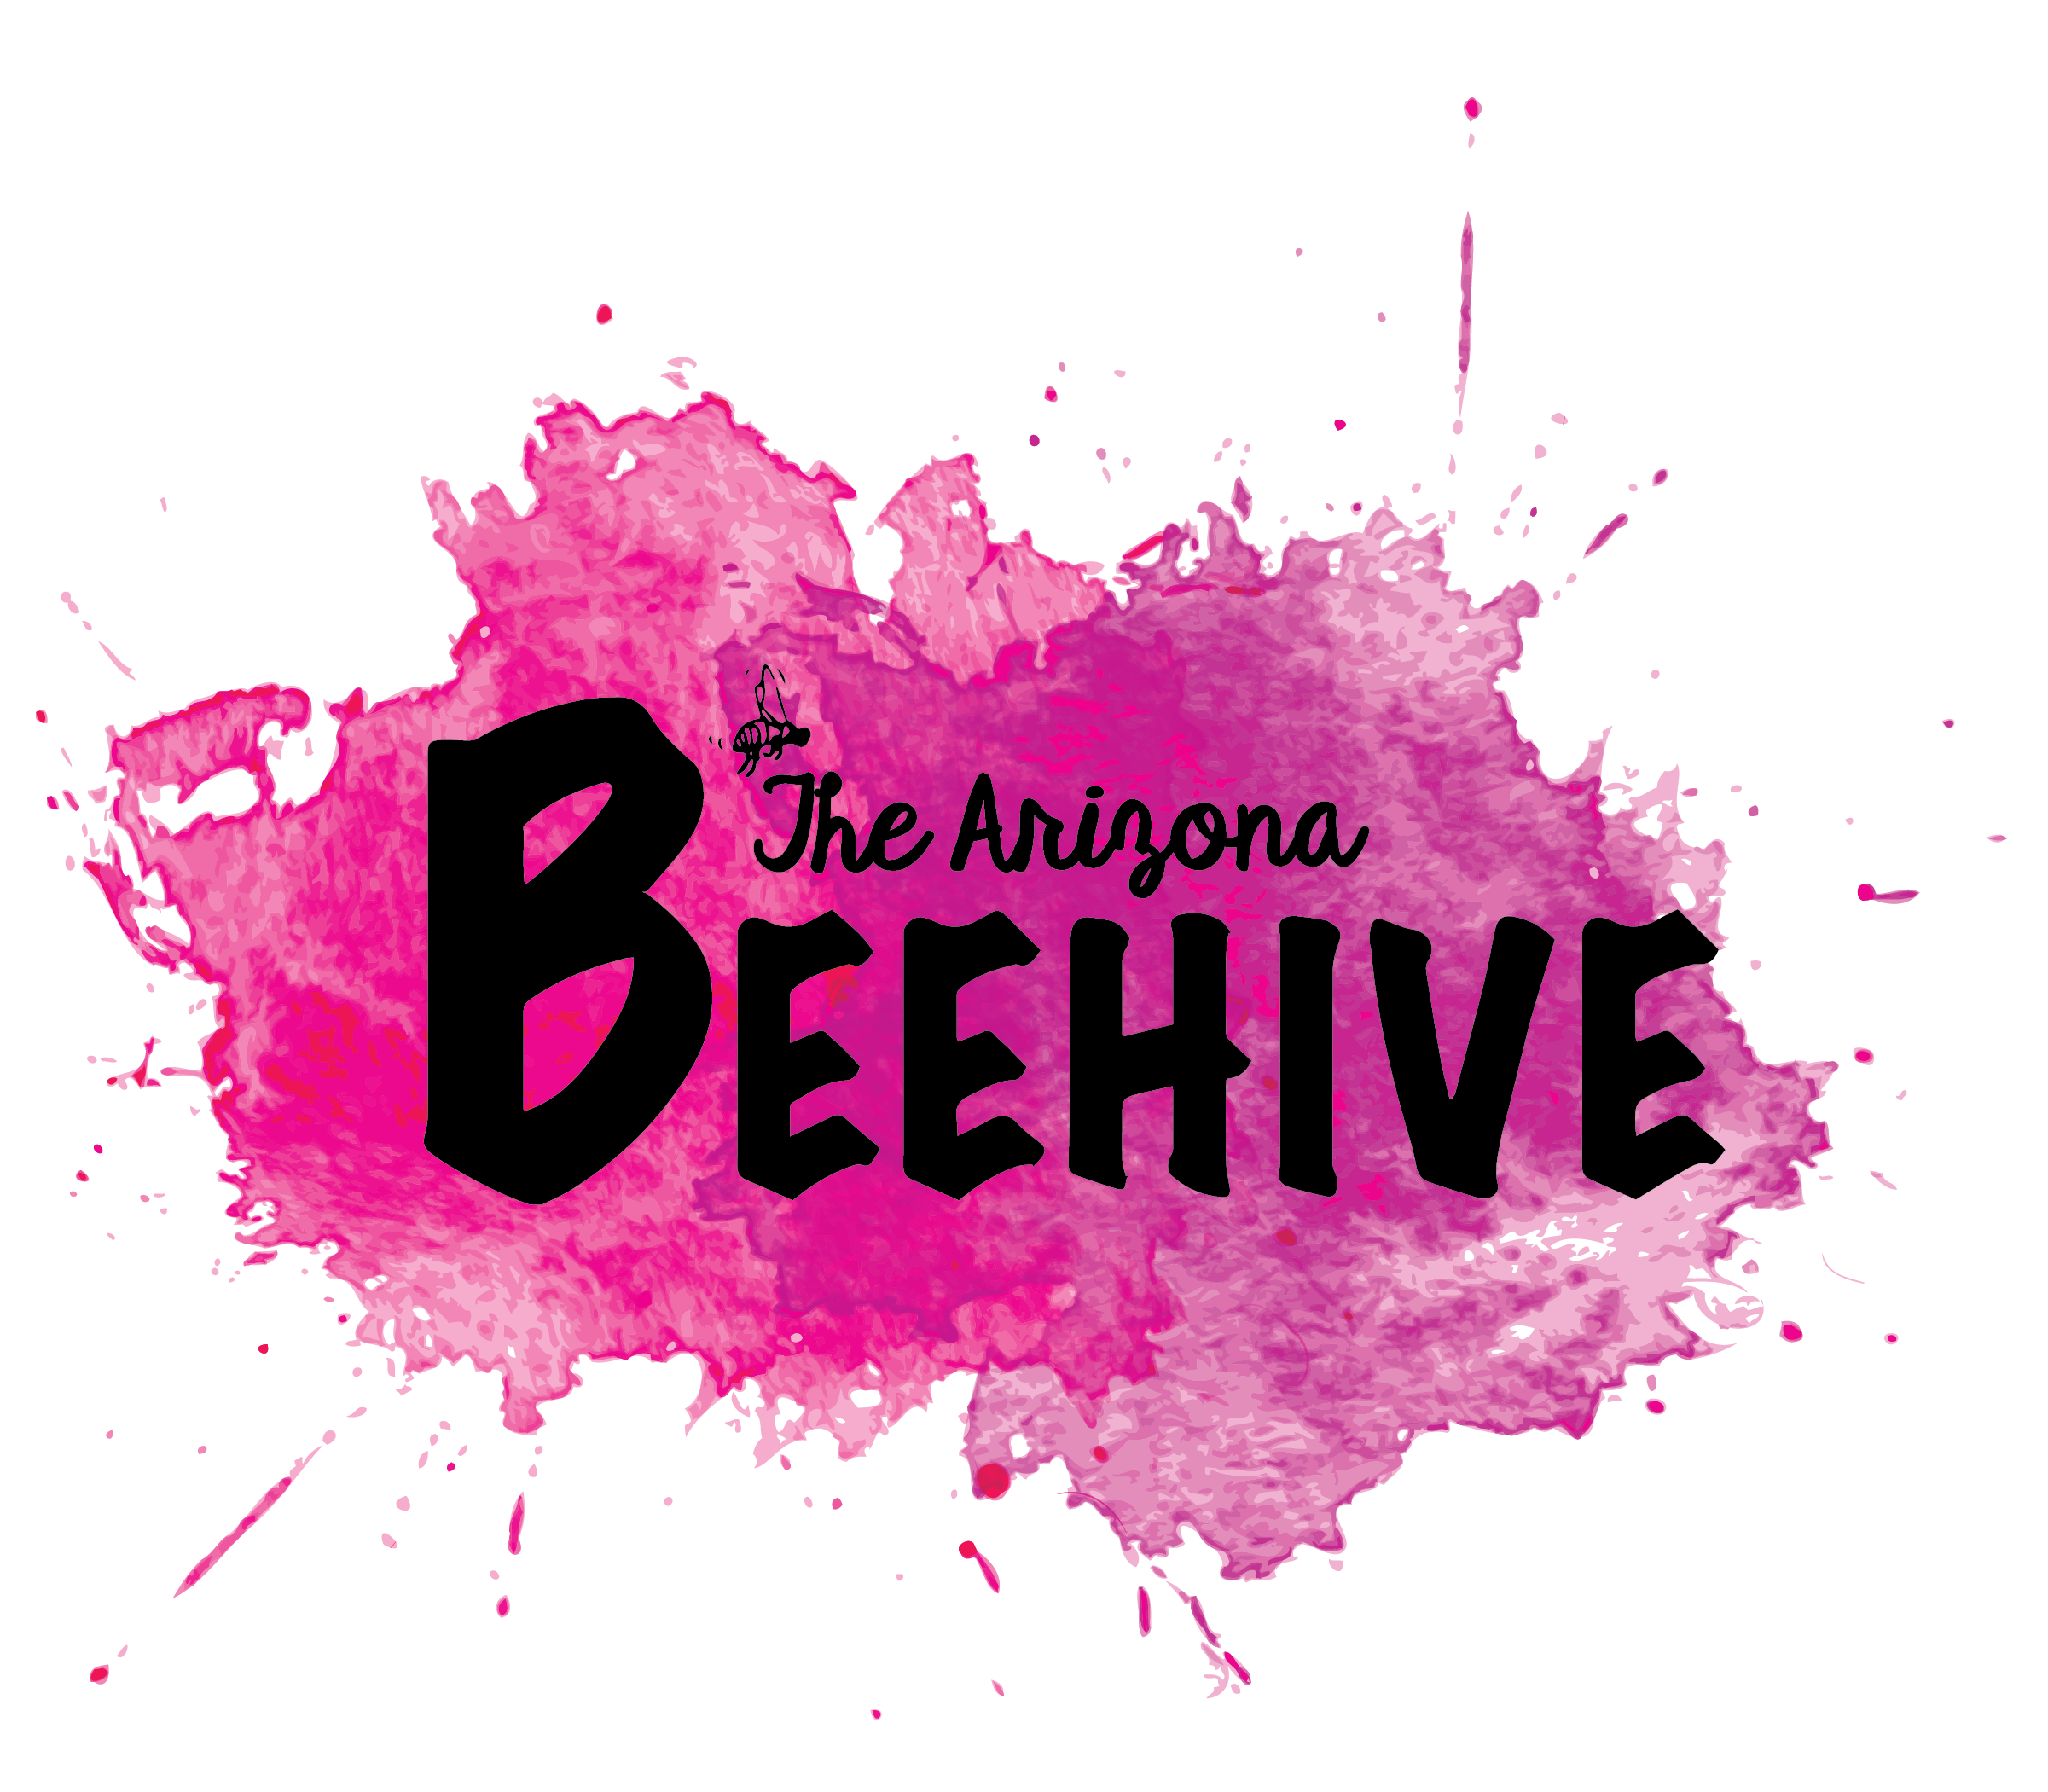 The Arizona Beehive